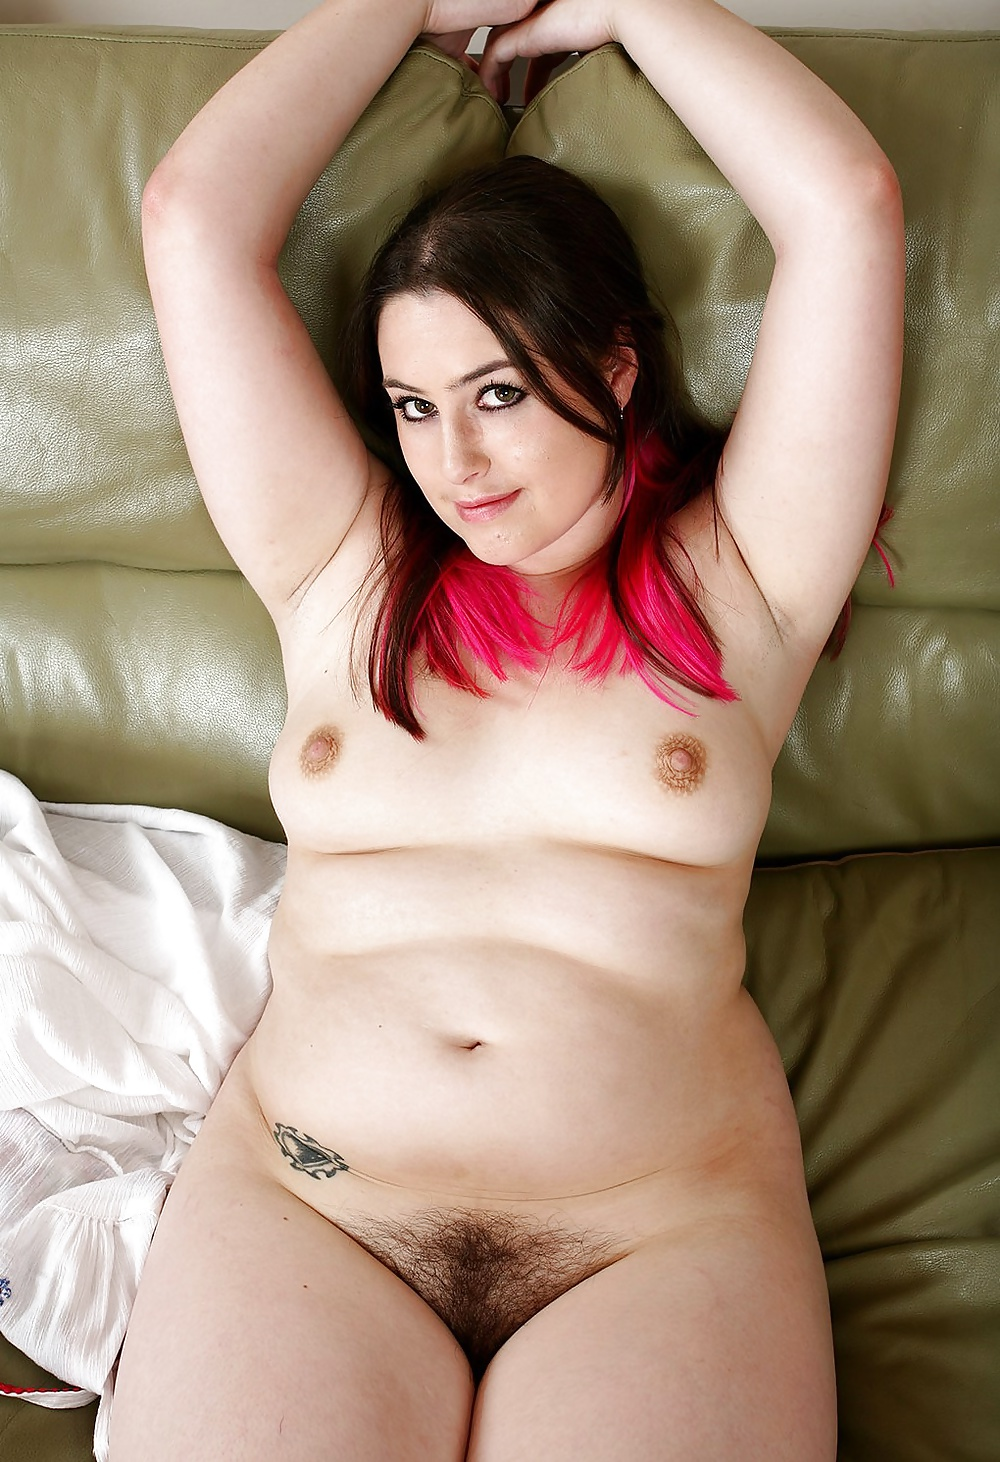 Teen hairy babe gina with puffy nipples image gallery